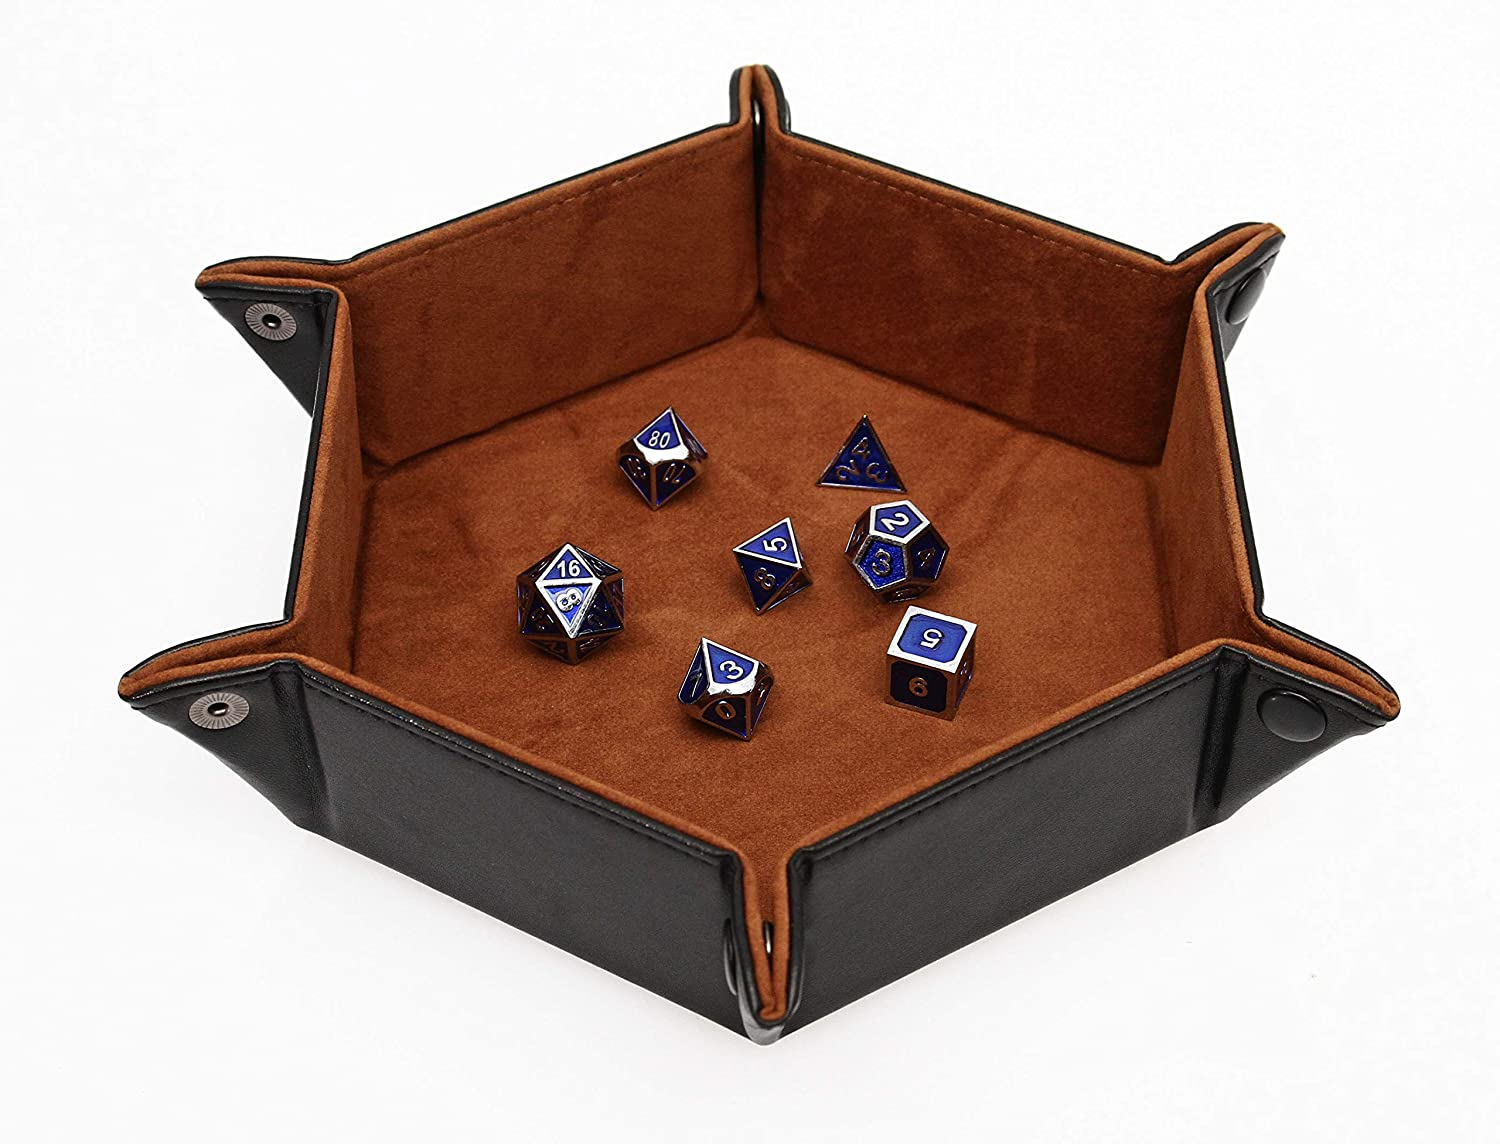 Forged Dice Co Dice Tray Portable Folding Dice Rolling Tray for use as DND Dice Tray D/&D Dice Tray or Dice Game 6.5 Inch Quiets Rolling Metal Dice Stronger Snaps Hold Tighter Than Other Dice Trays